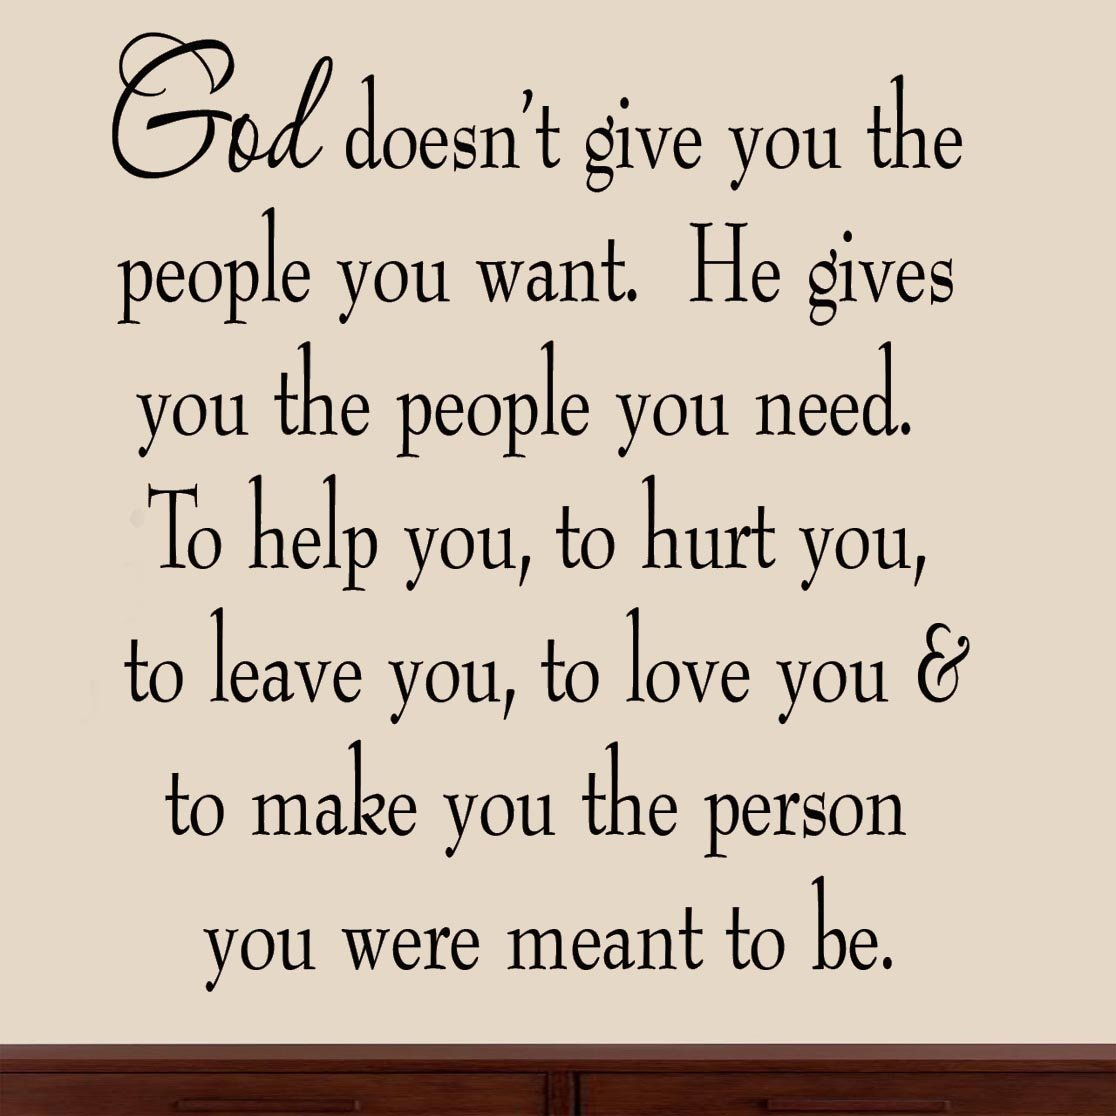 Amazoncom Vwaq God Doesnt Give You The People You Want He Gives